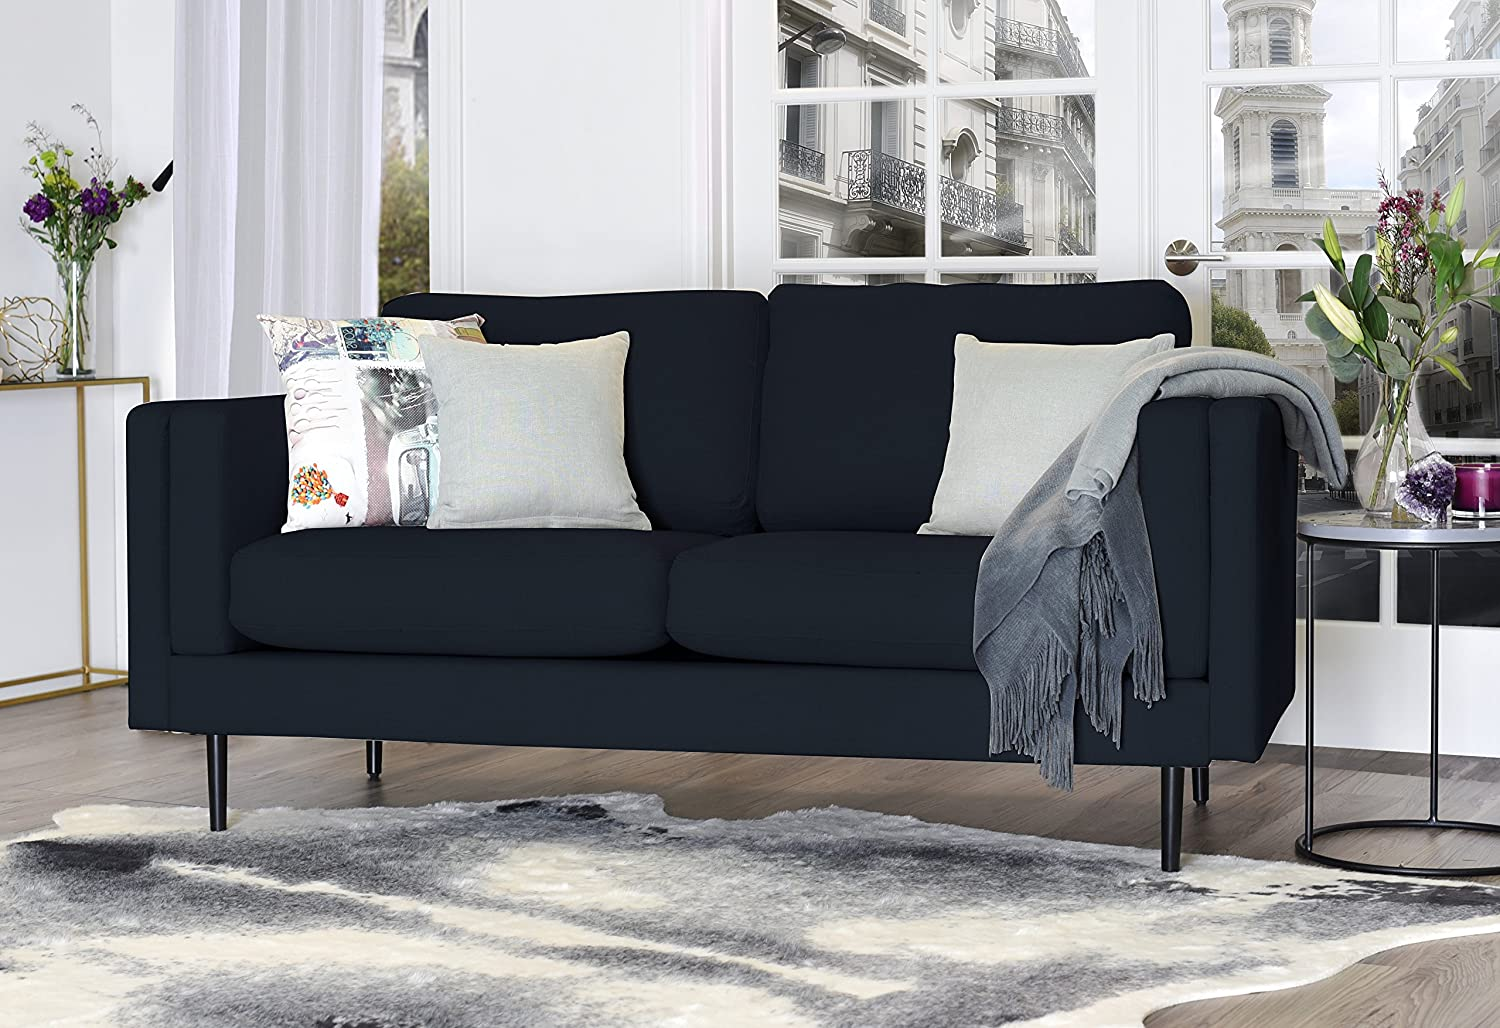 Elle Decor Simone Sofa - French Cobalt Velvet